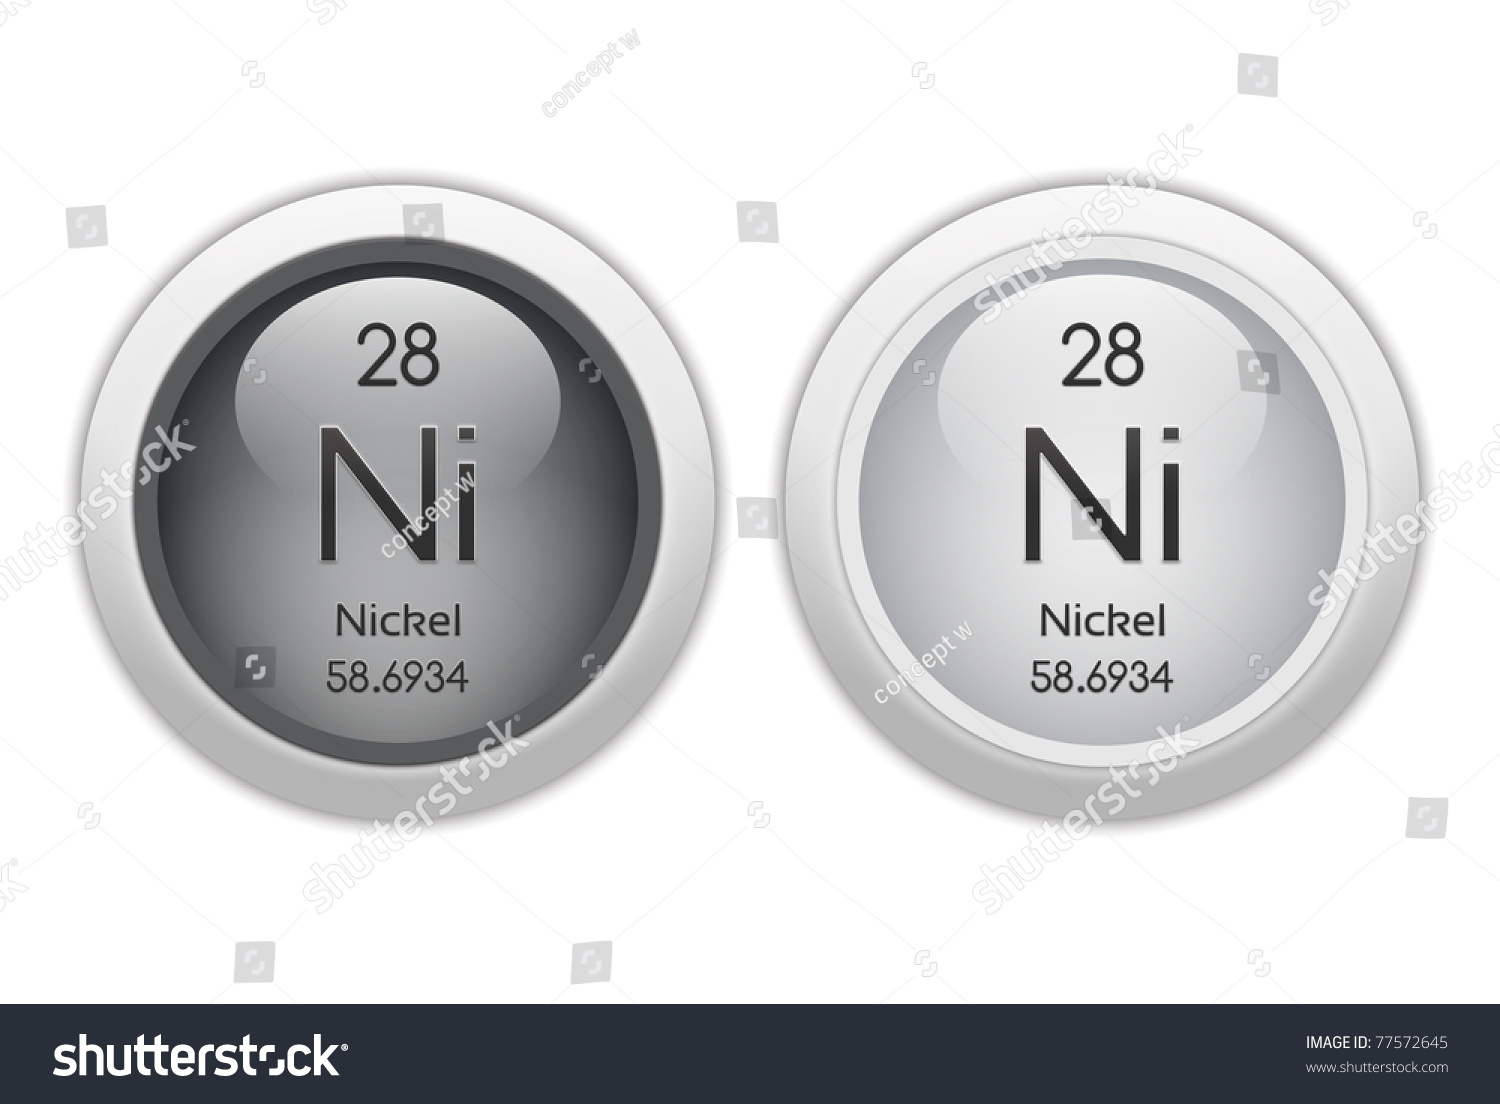 Nickel two web buttons chemical element stock illustration 77572645 nickel two web buttons chemical element with atomic number 28 it is represented buycottarizona Gallery